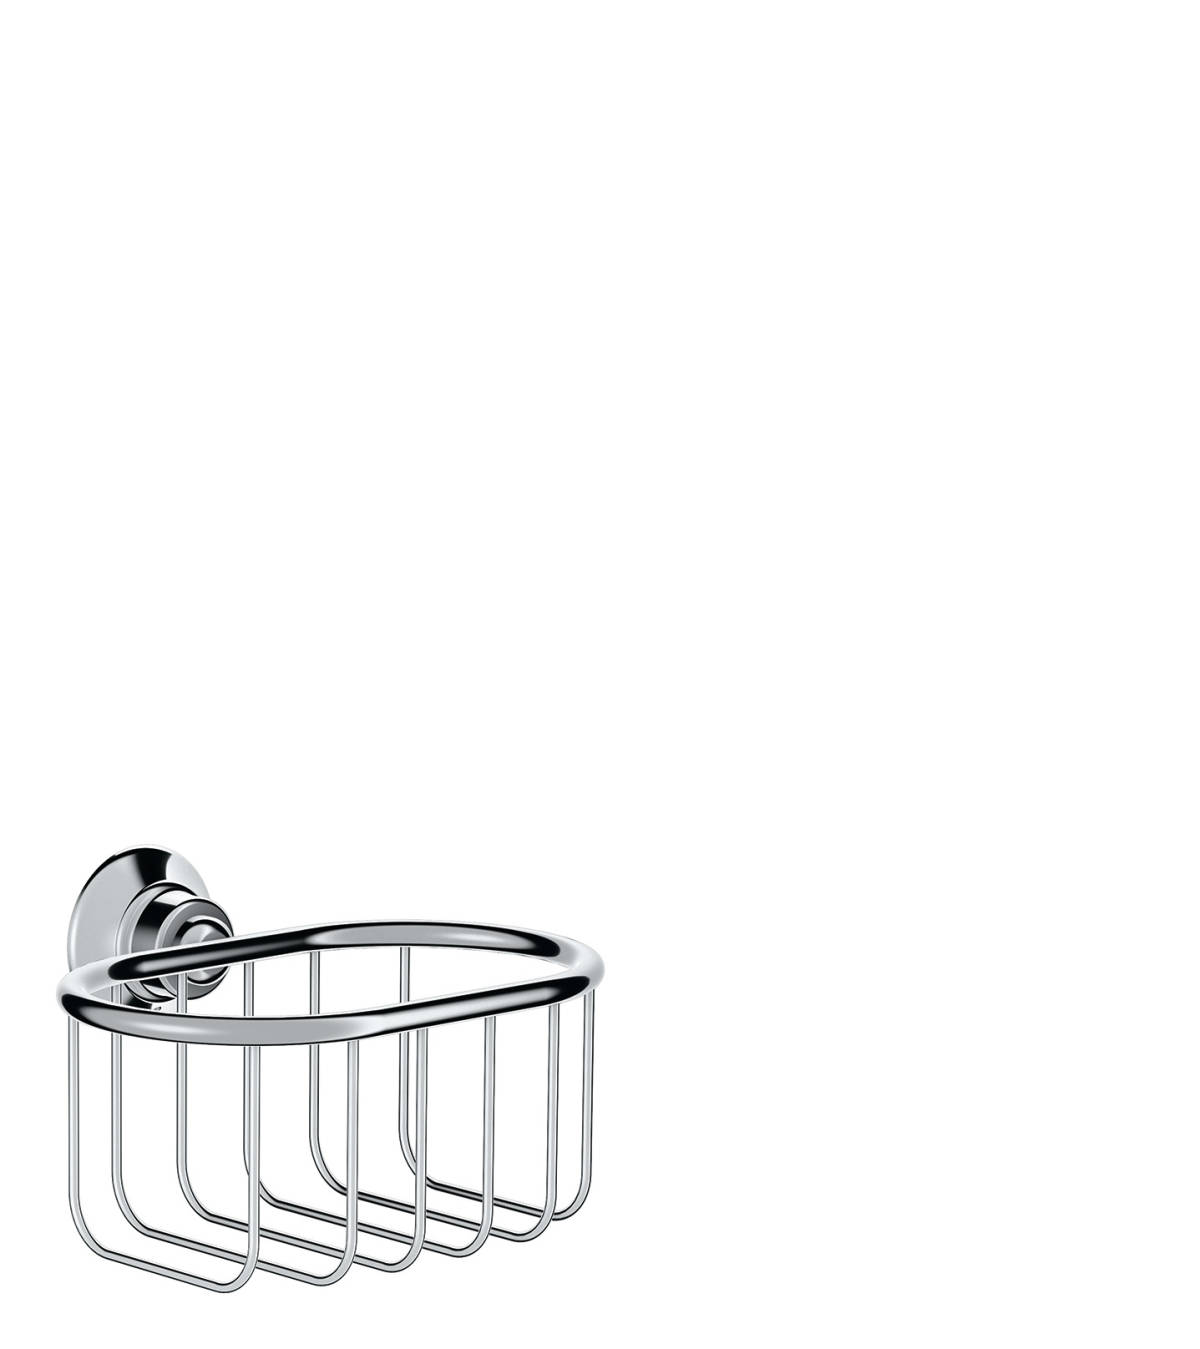 Corner basket 160/101, Polished Chrome, 42065020